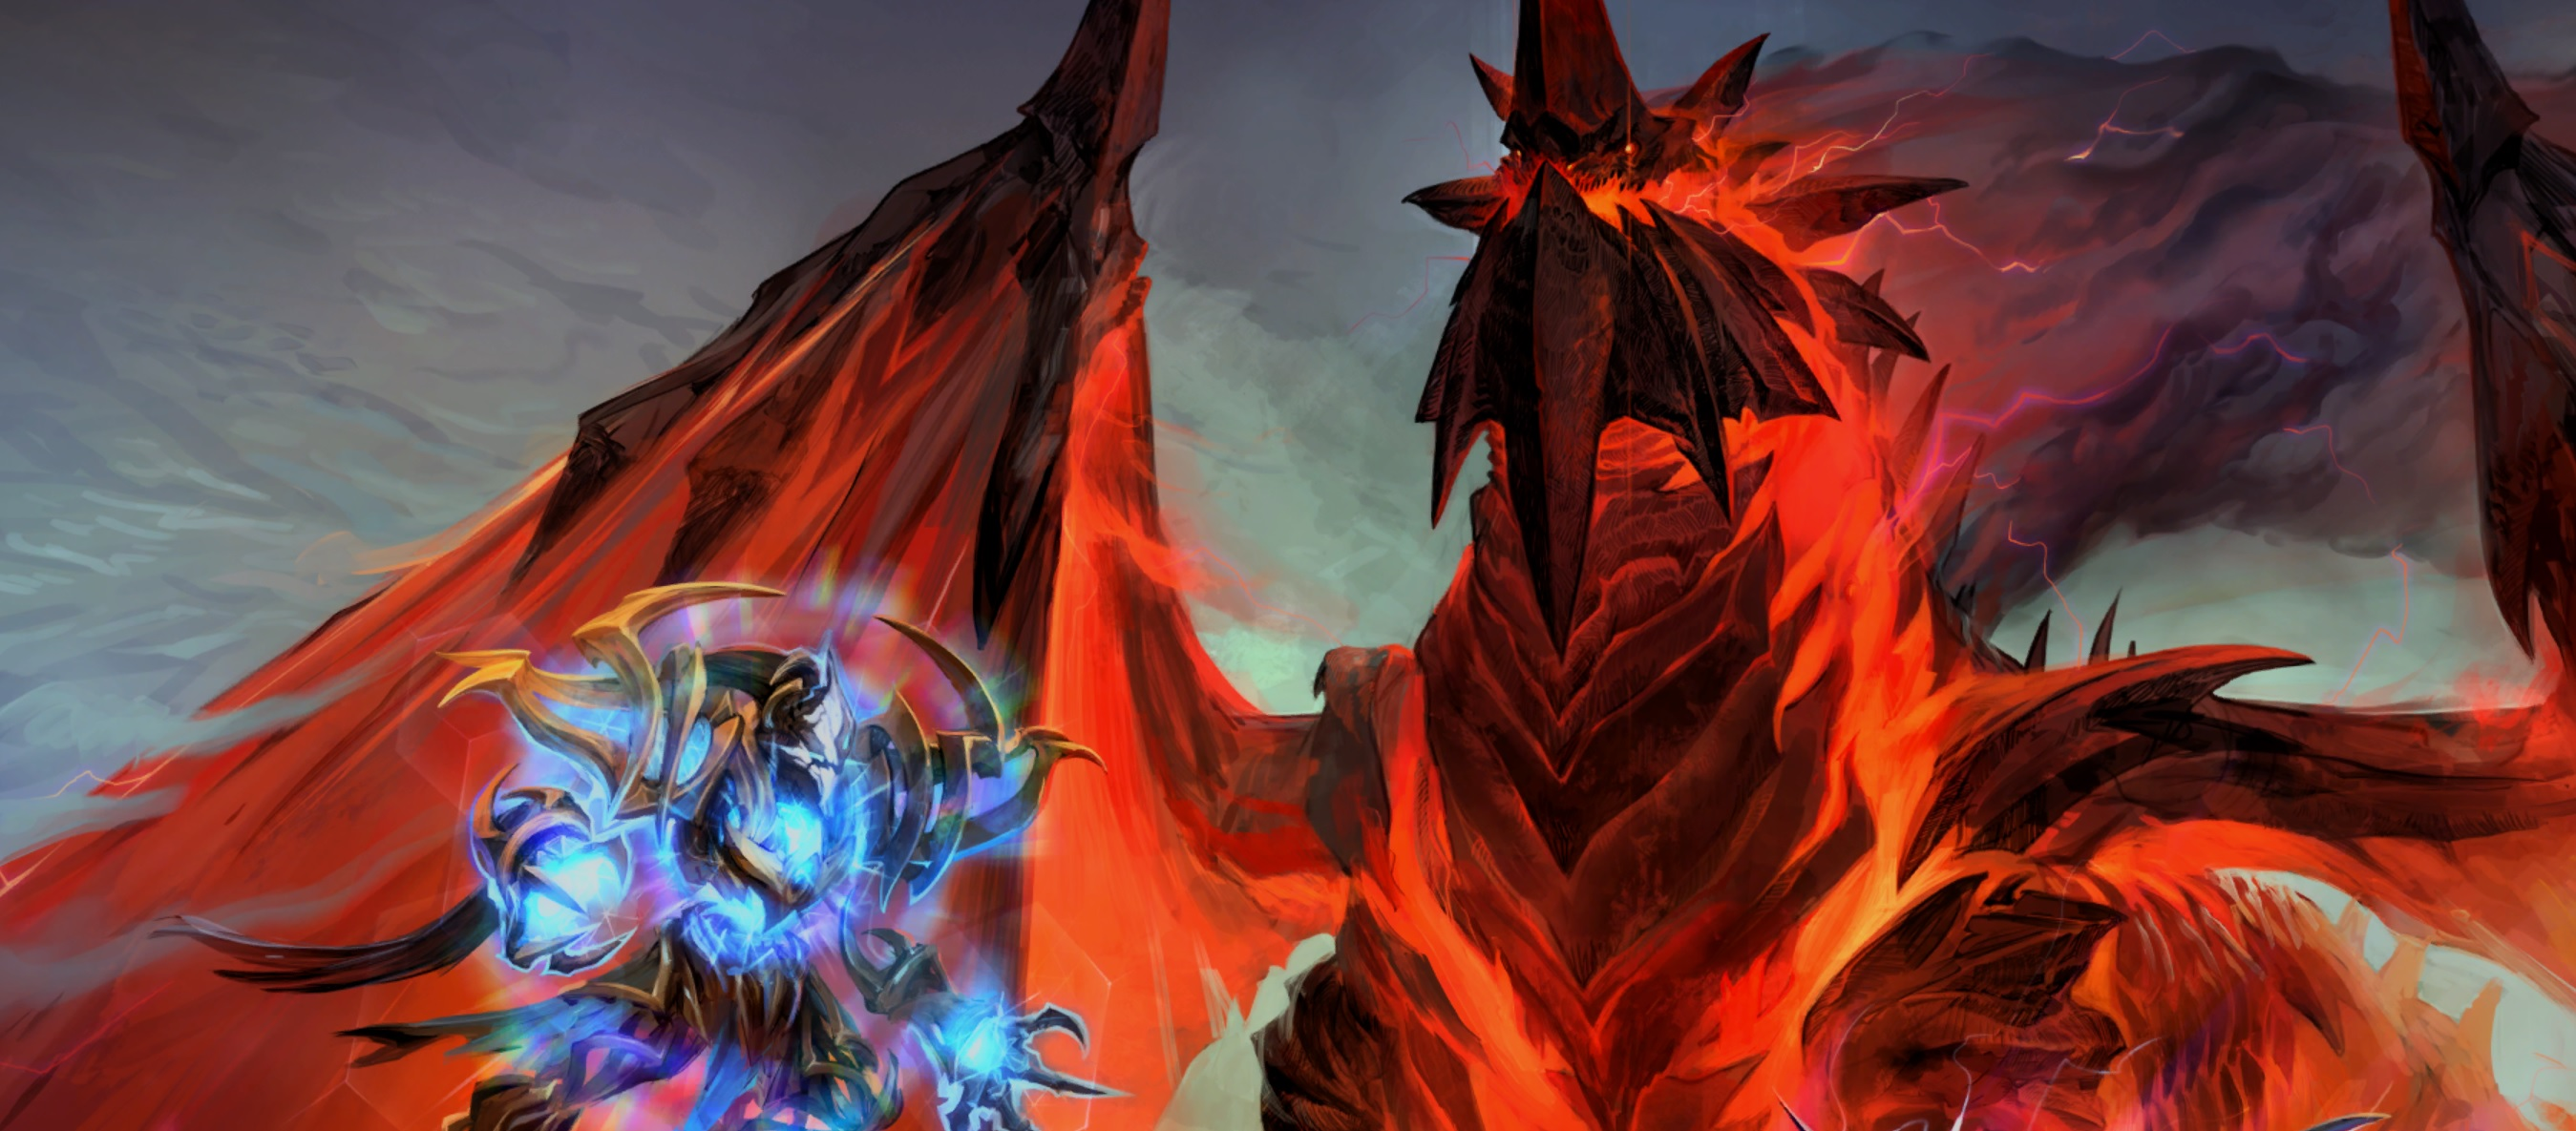 Big changes are coming to Heroes of the Storm, heralded by a badass Deathwing skin and a Tasaddar rework screenshot